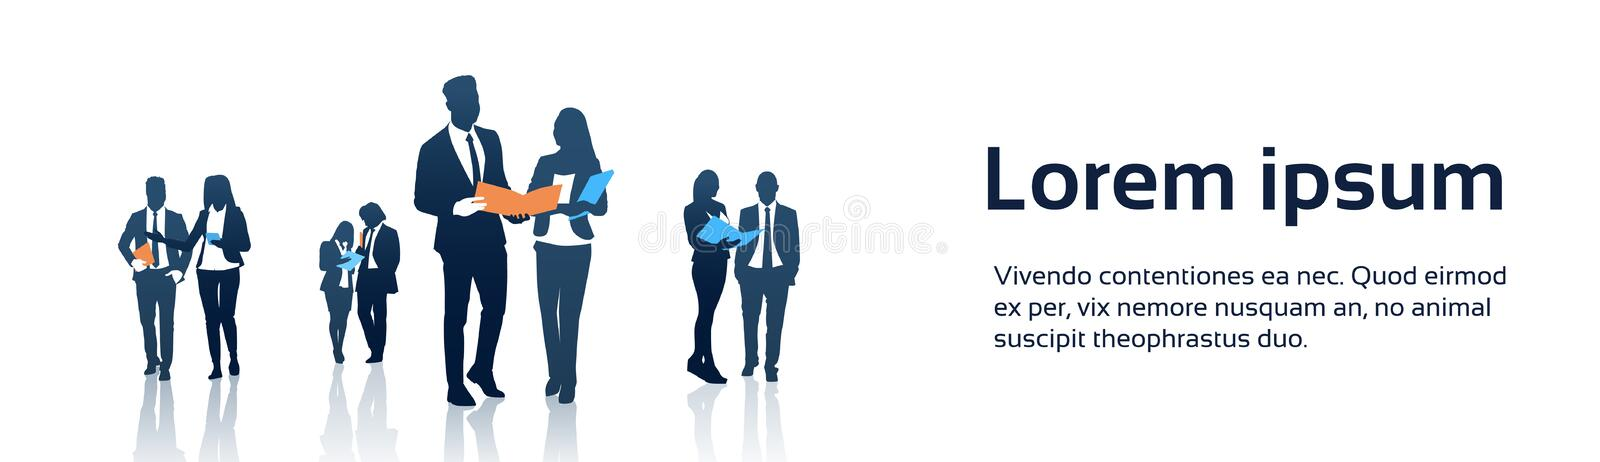 Business People Team Crowd Silhouette Businesspeople Group Hold Document Folders royalty free illustration